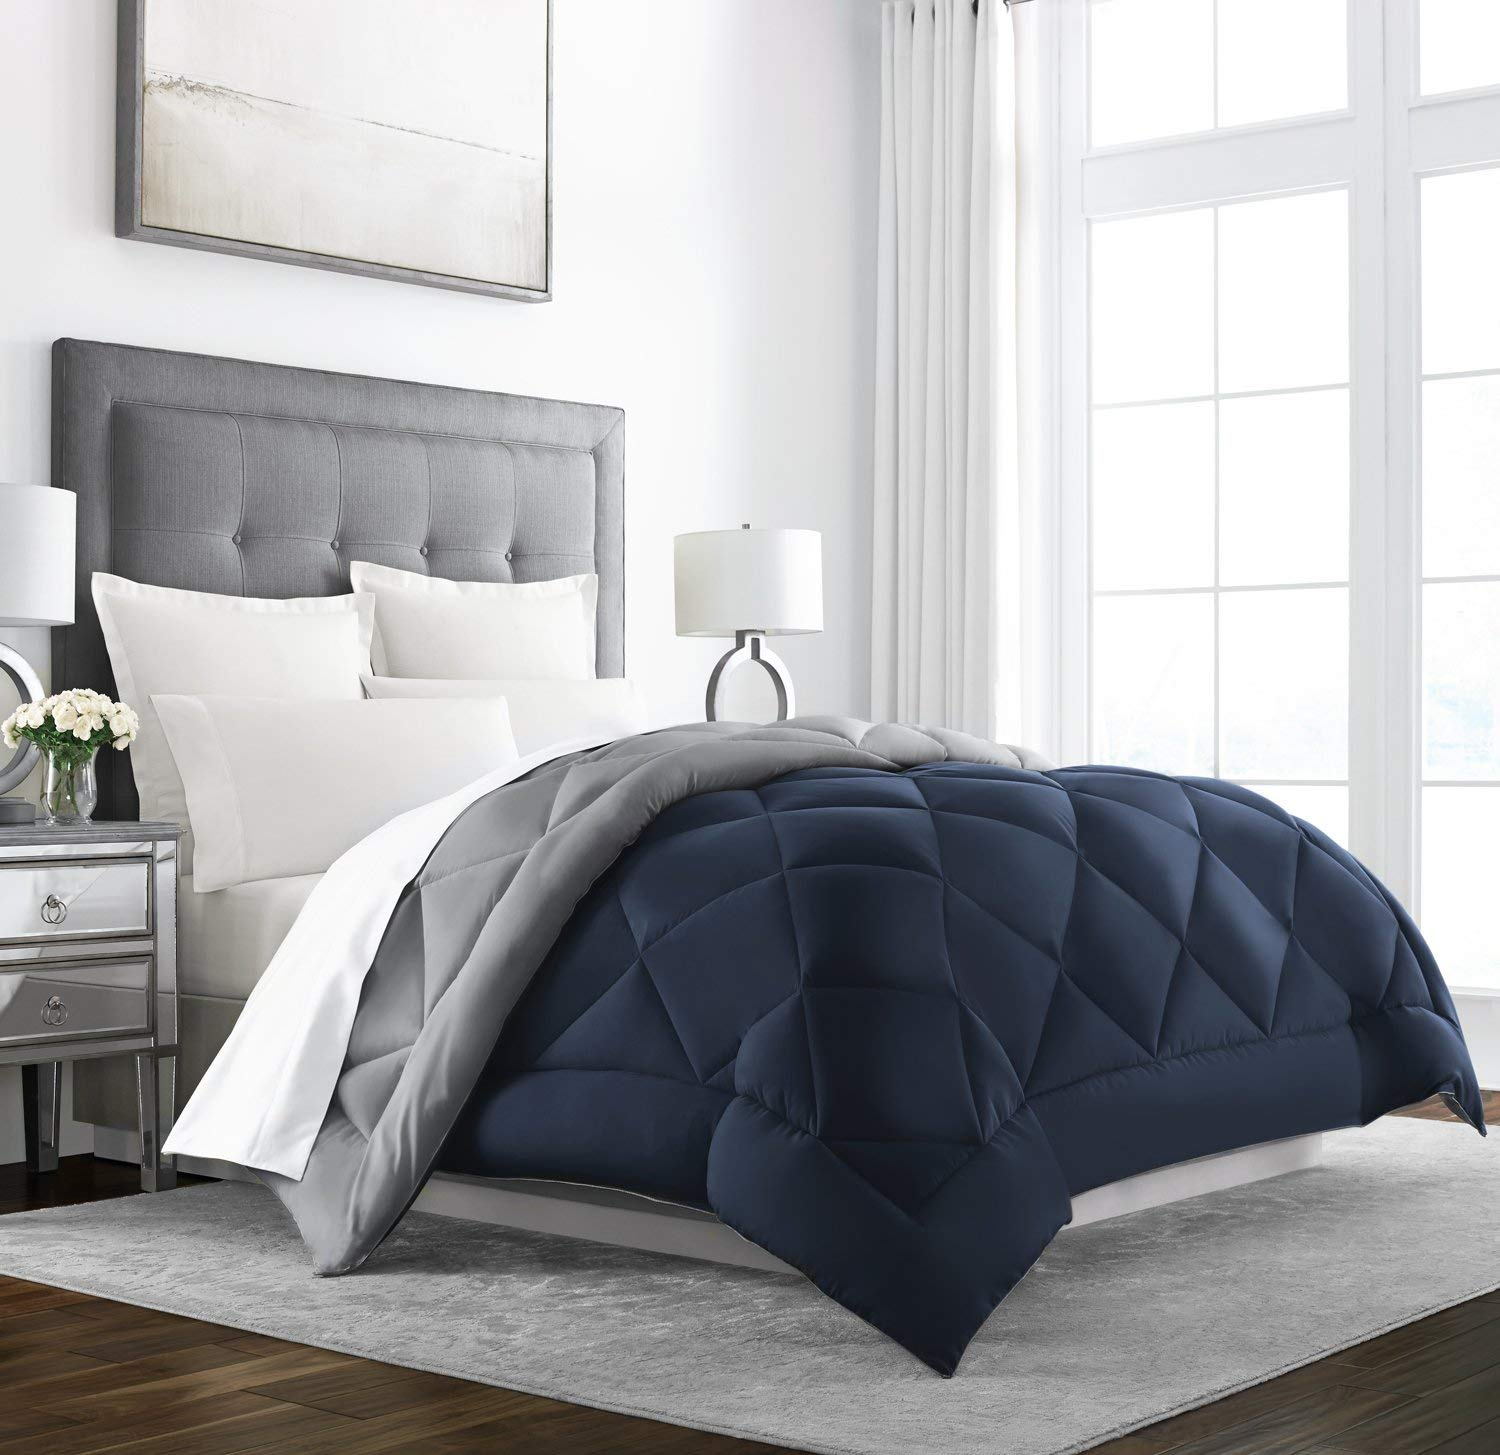 Sleep Restoration Goose Down Alternative Comforter - Reversible - All Season Hotel Quality Luxury Hypoallergenic Comforter -Full/Queen - Navy/Sleet